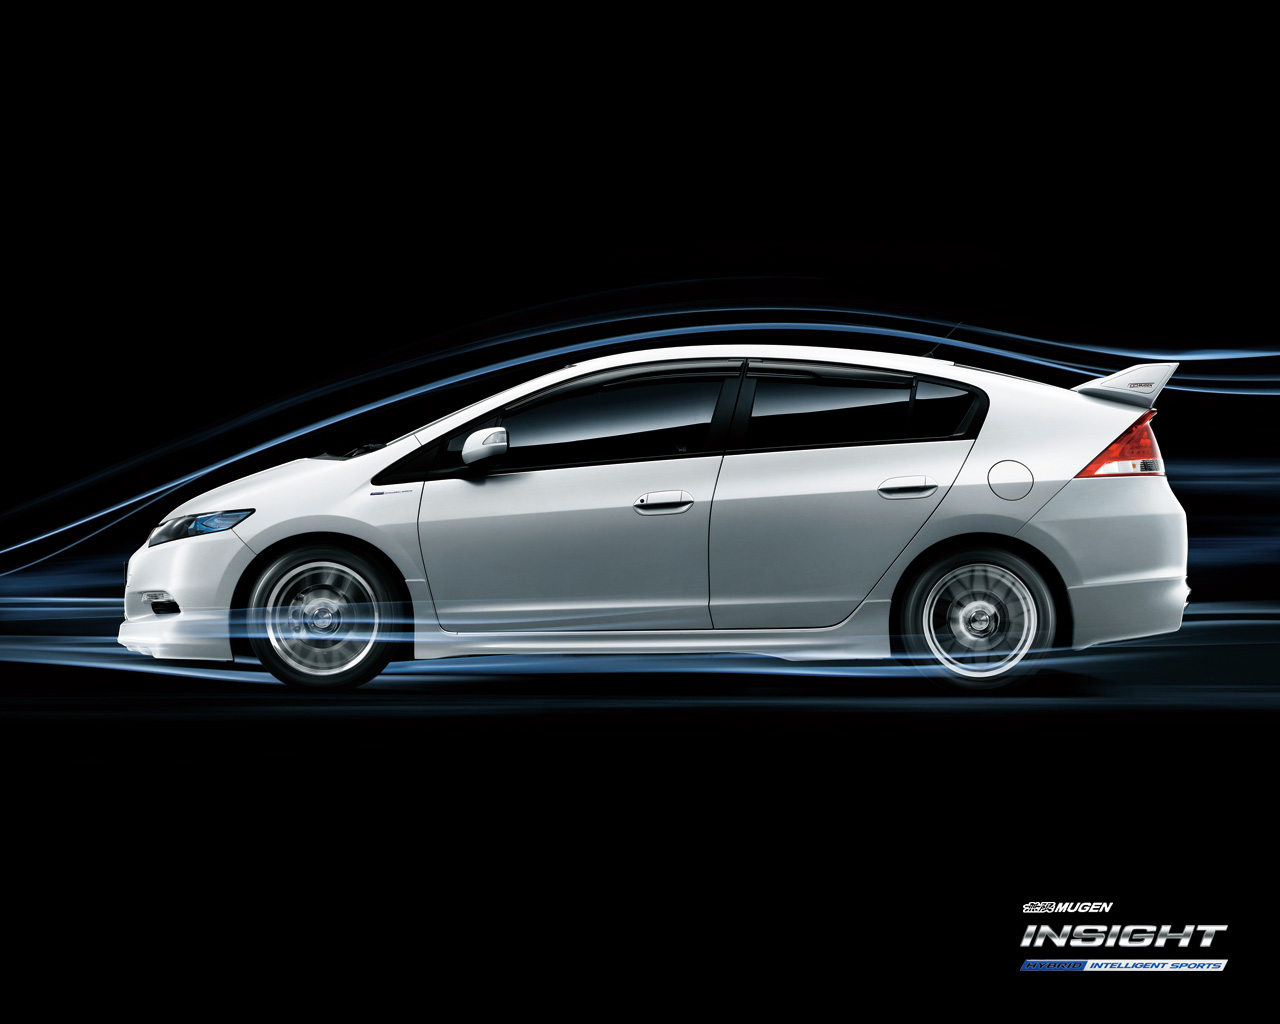 2010 honda insight [archive] - newcelica forum